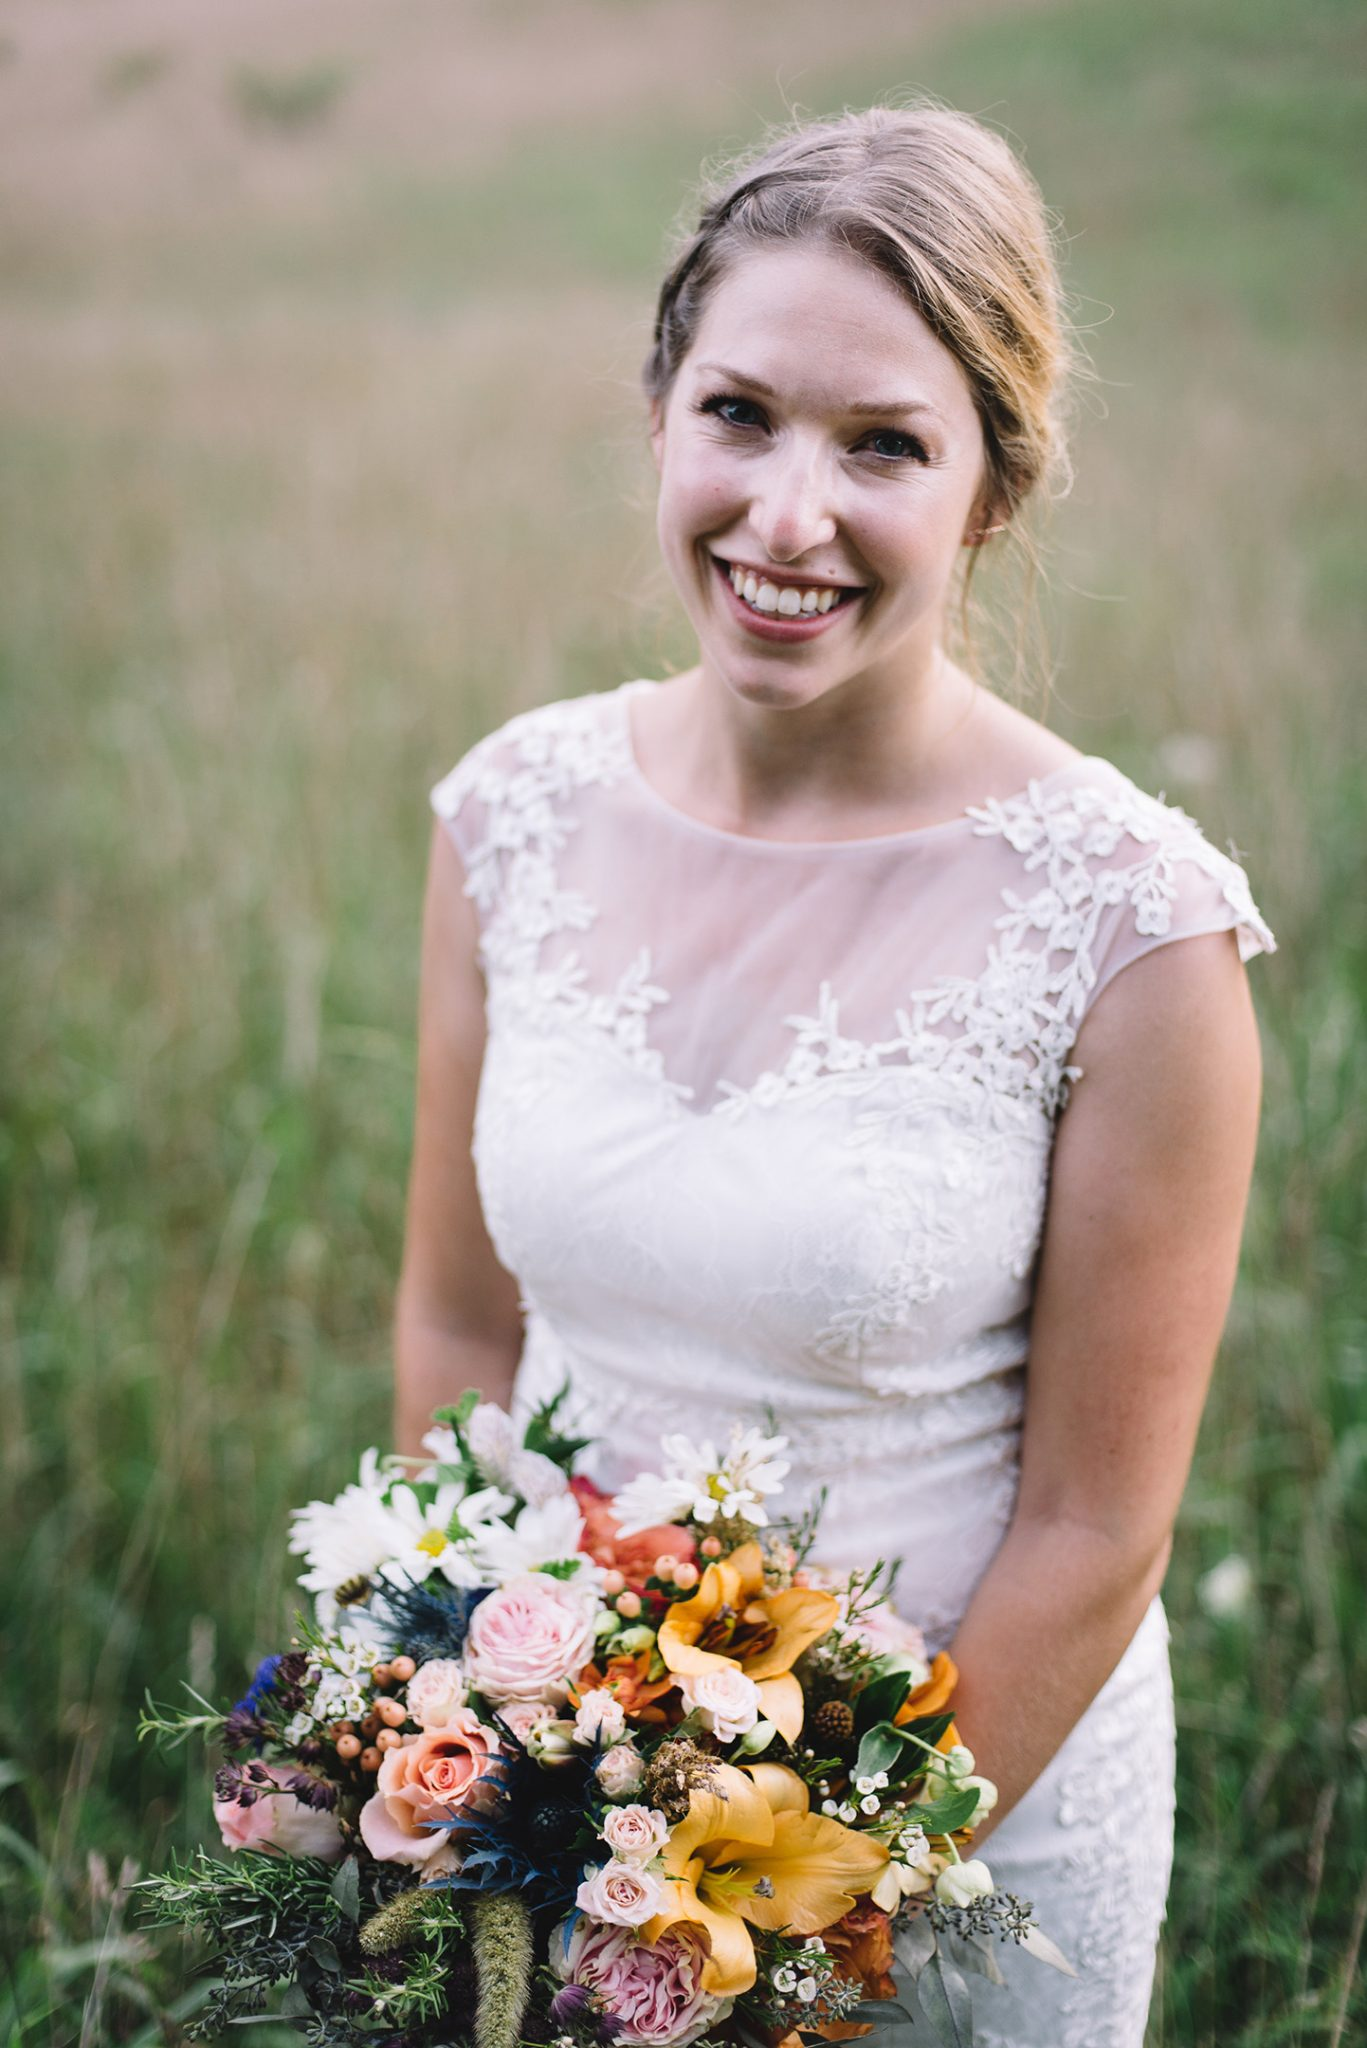 bride and flowers in field